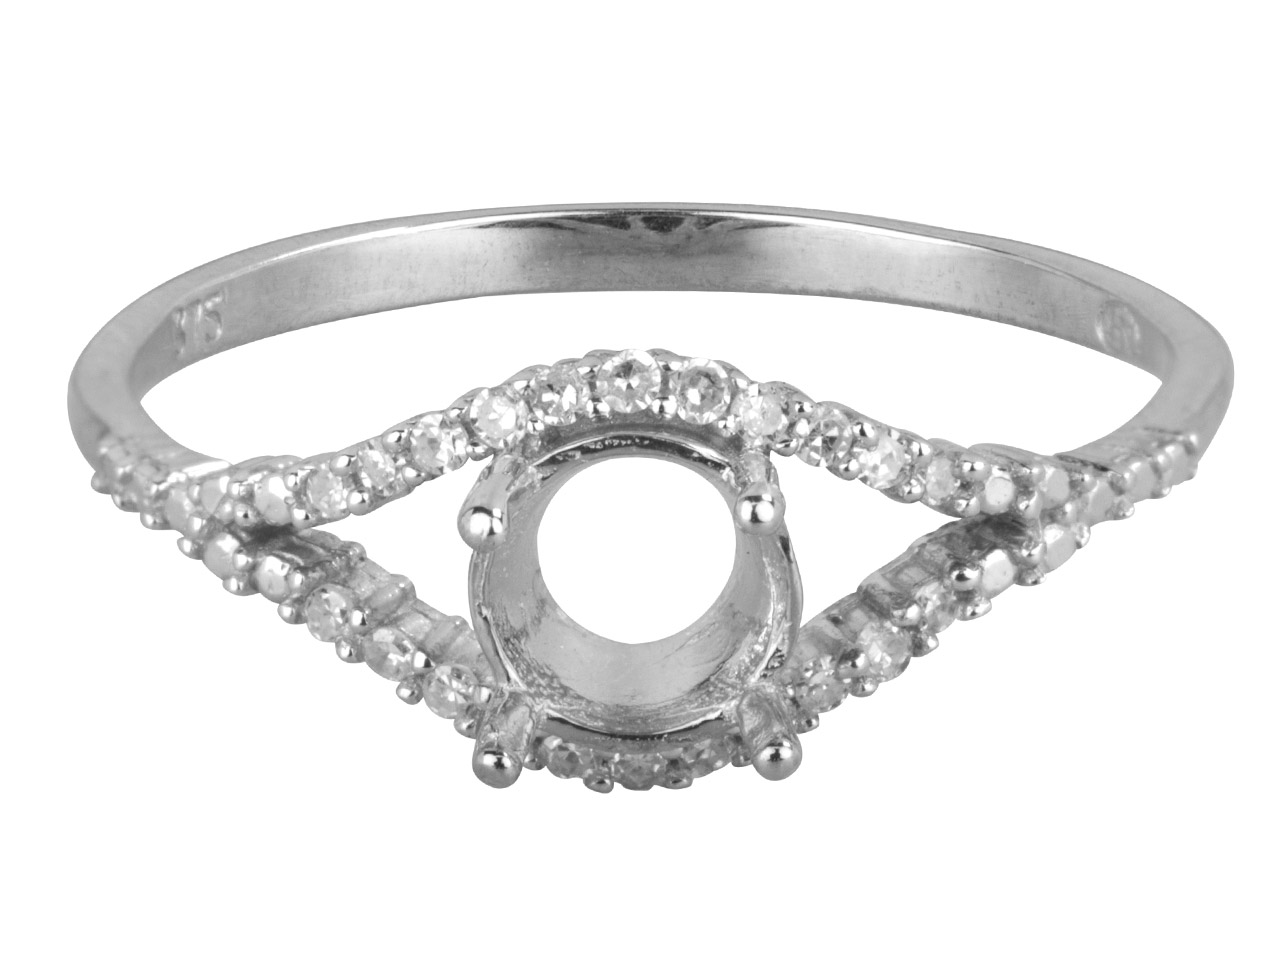 9ct White Semi Set Diamond Ring    Mount Hallmarked 22 Round Total    0.10ct Centre To Accommodate 6.0mm